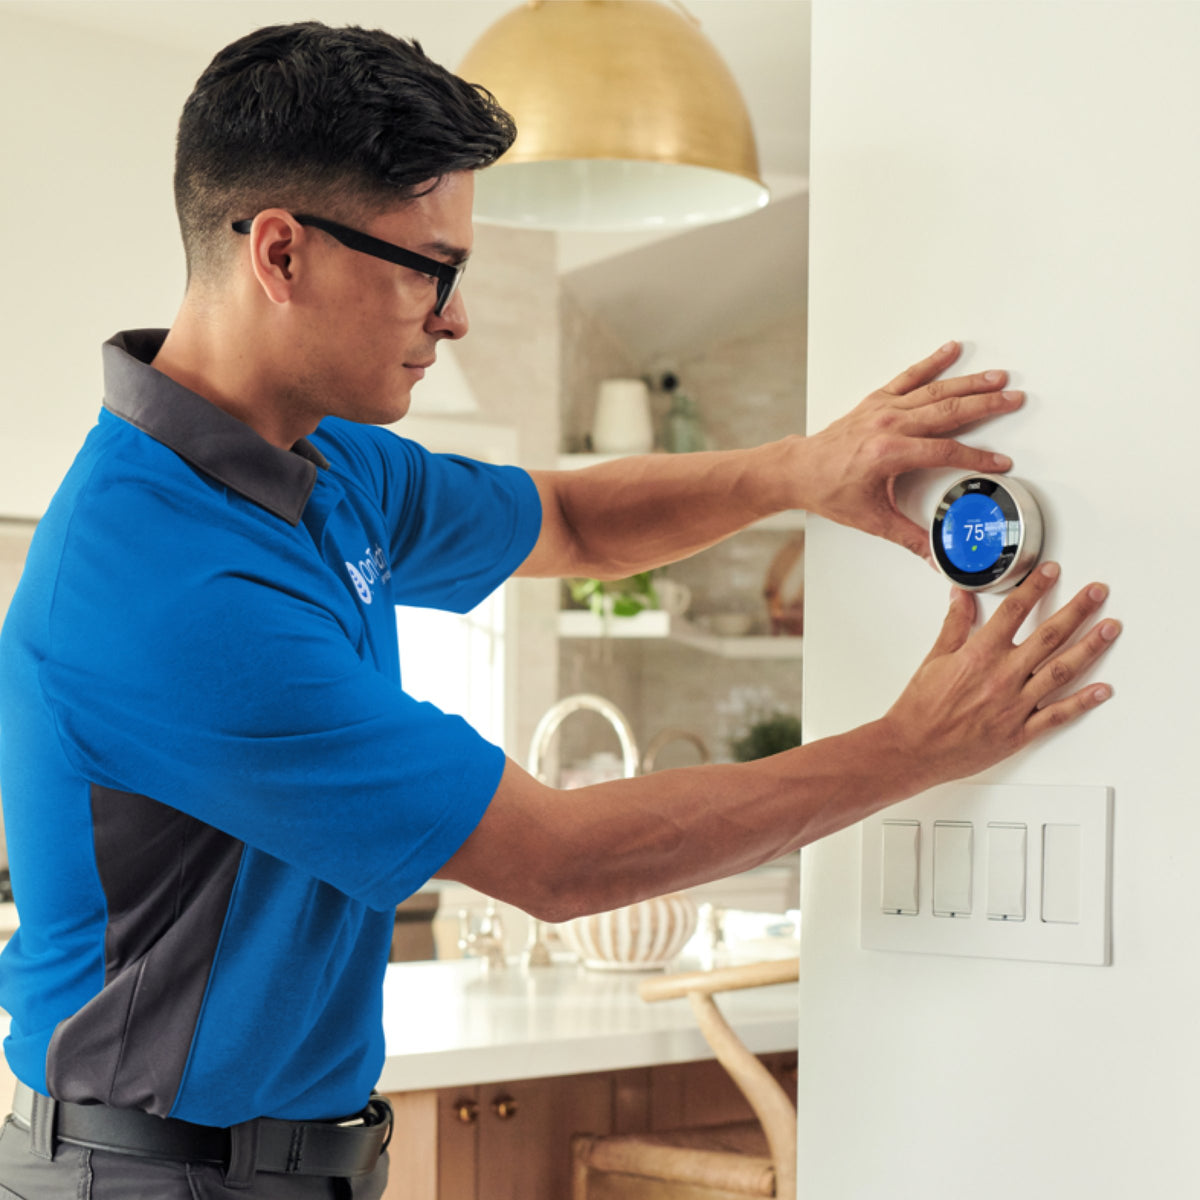 Nest Learning Thermostat & Installation